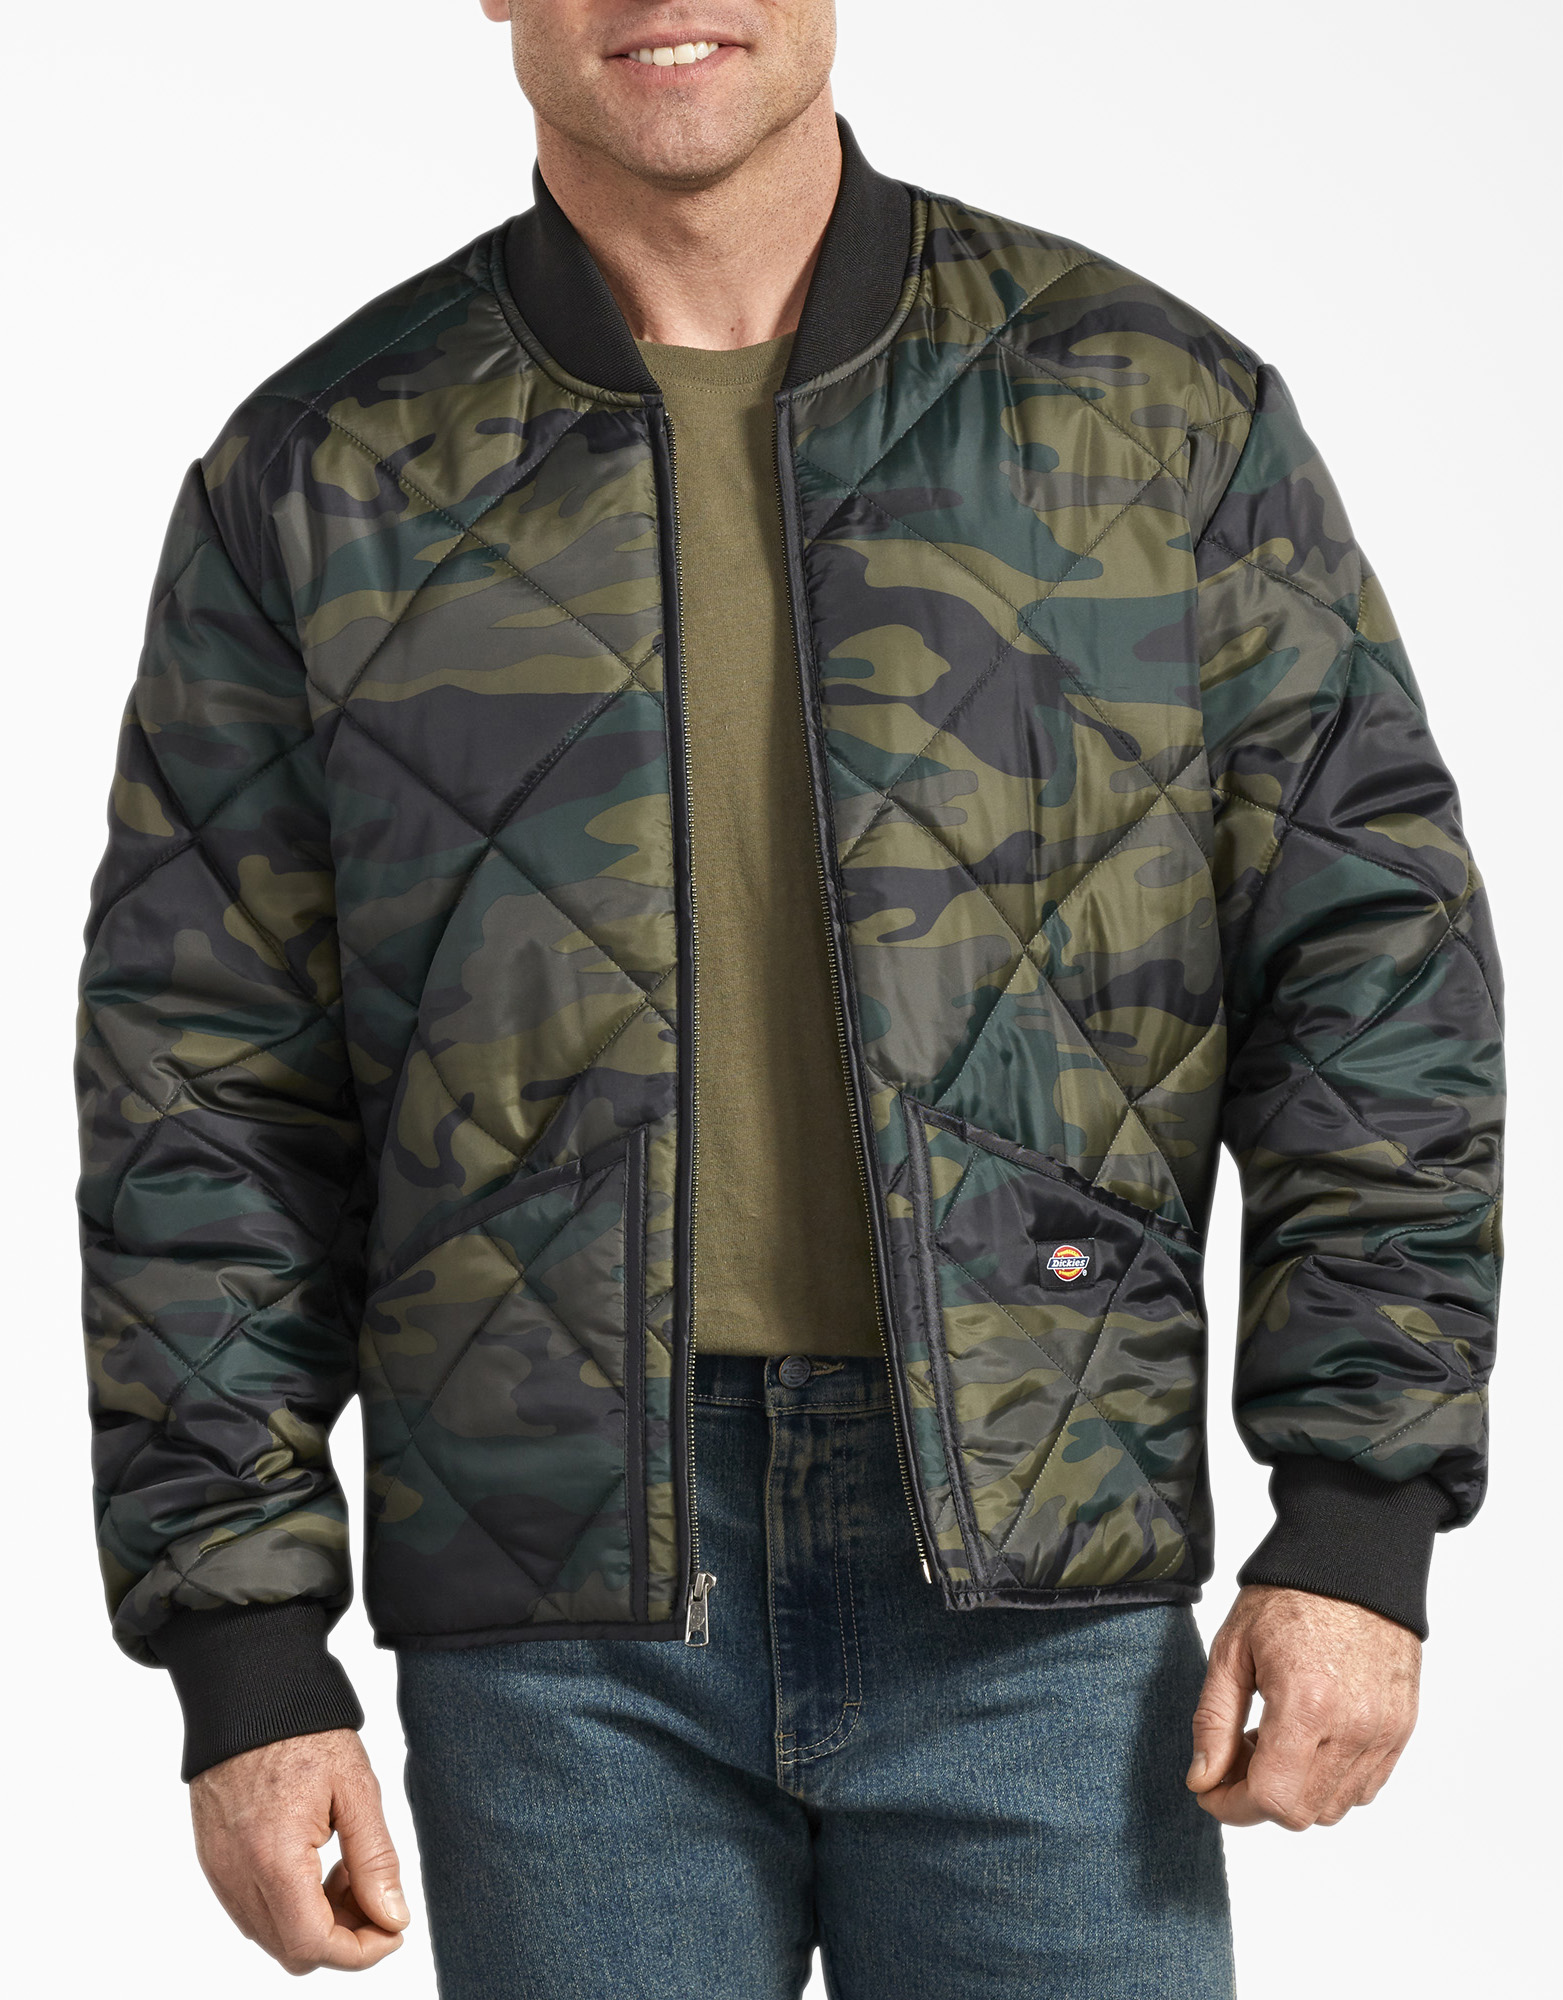 Camo Diamond Quilted Jacket - Hunter Green Camo (HRC)